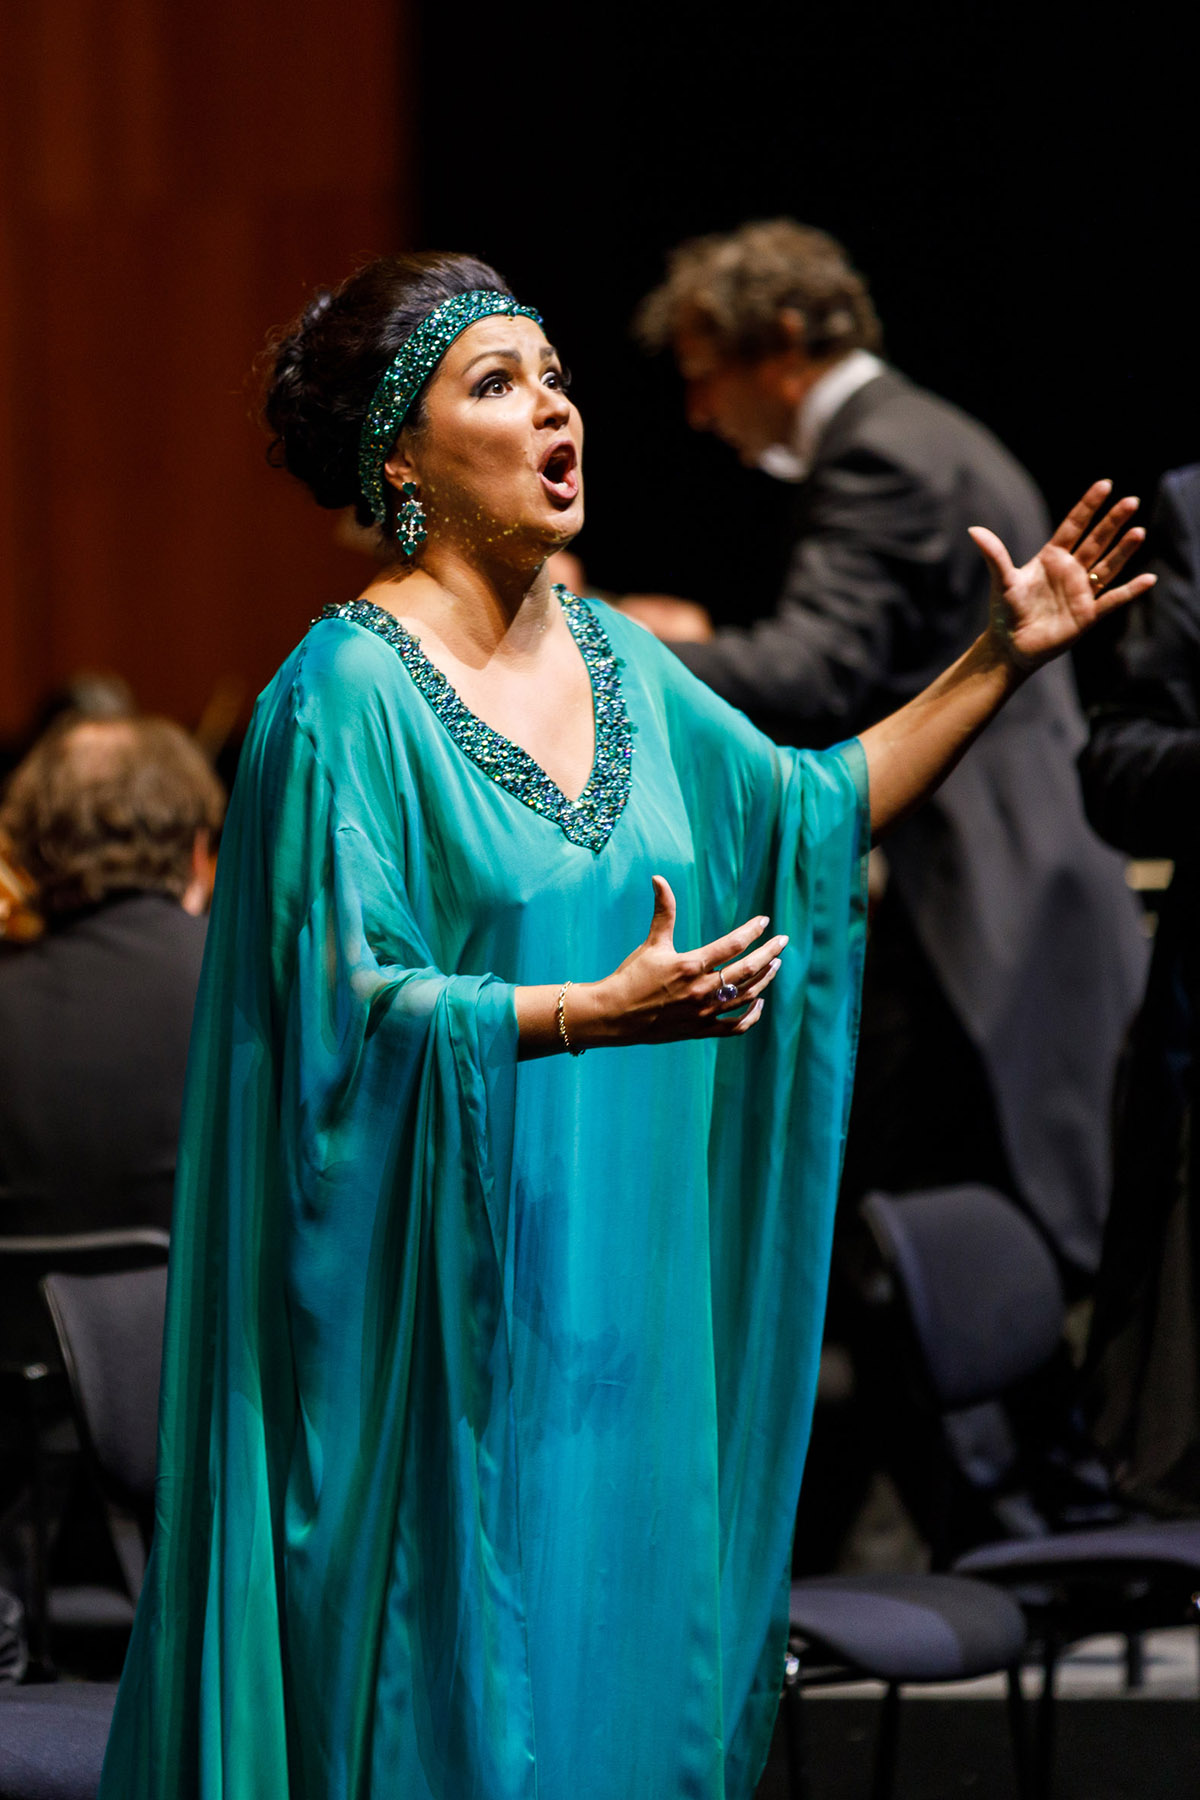 Female opera singer mid performance in a blue Arabian style dress